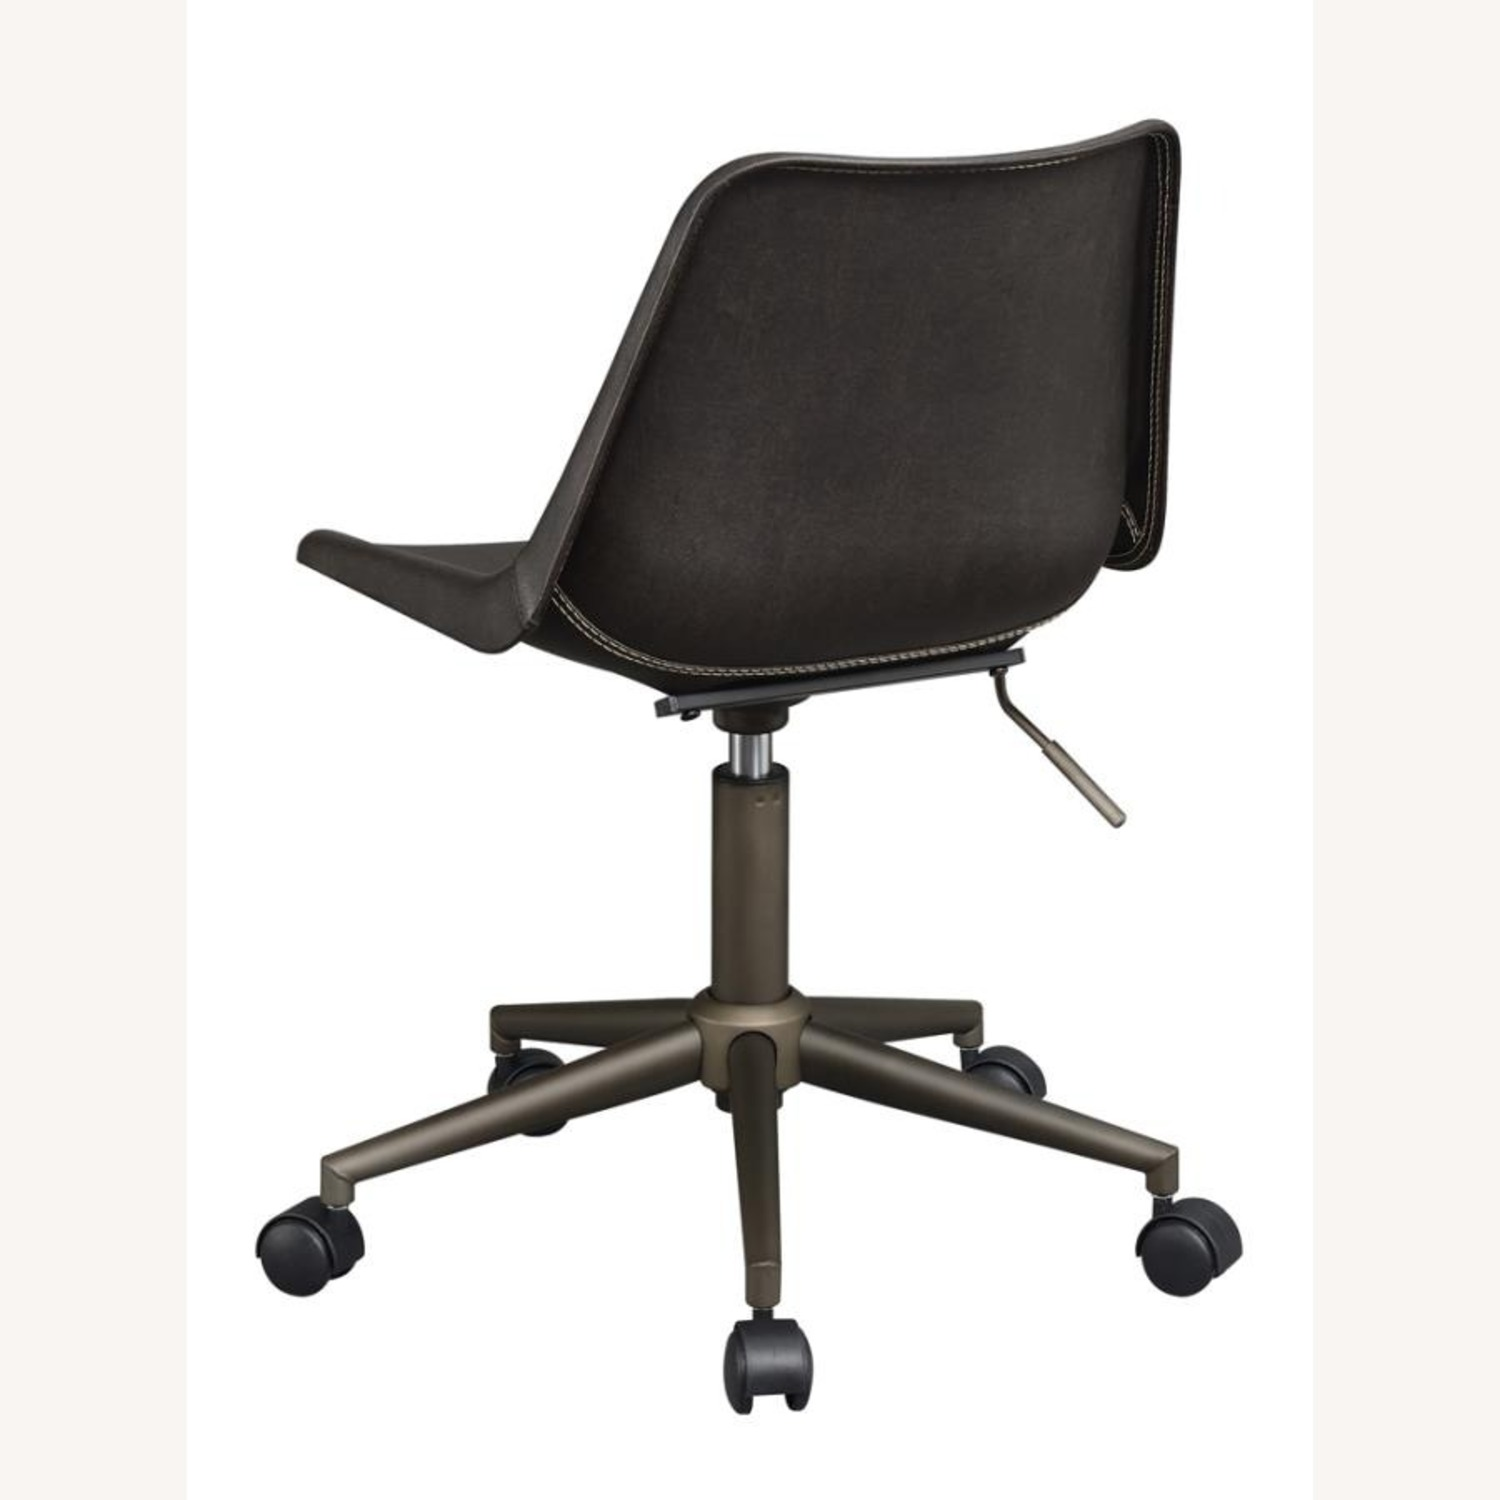 Office Chair In Brown Leatherette & Bronze Base - image-4